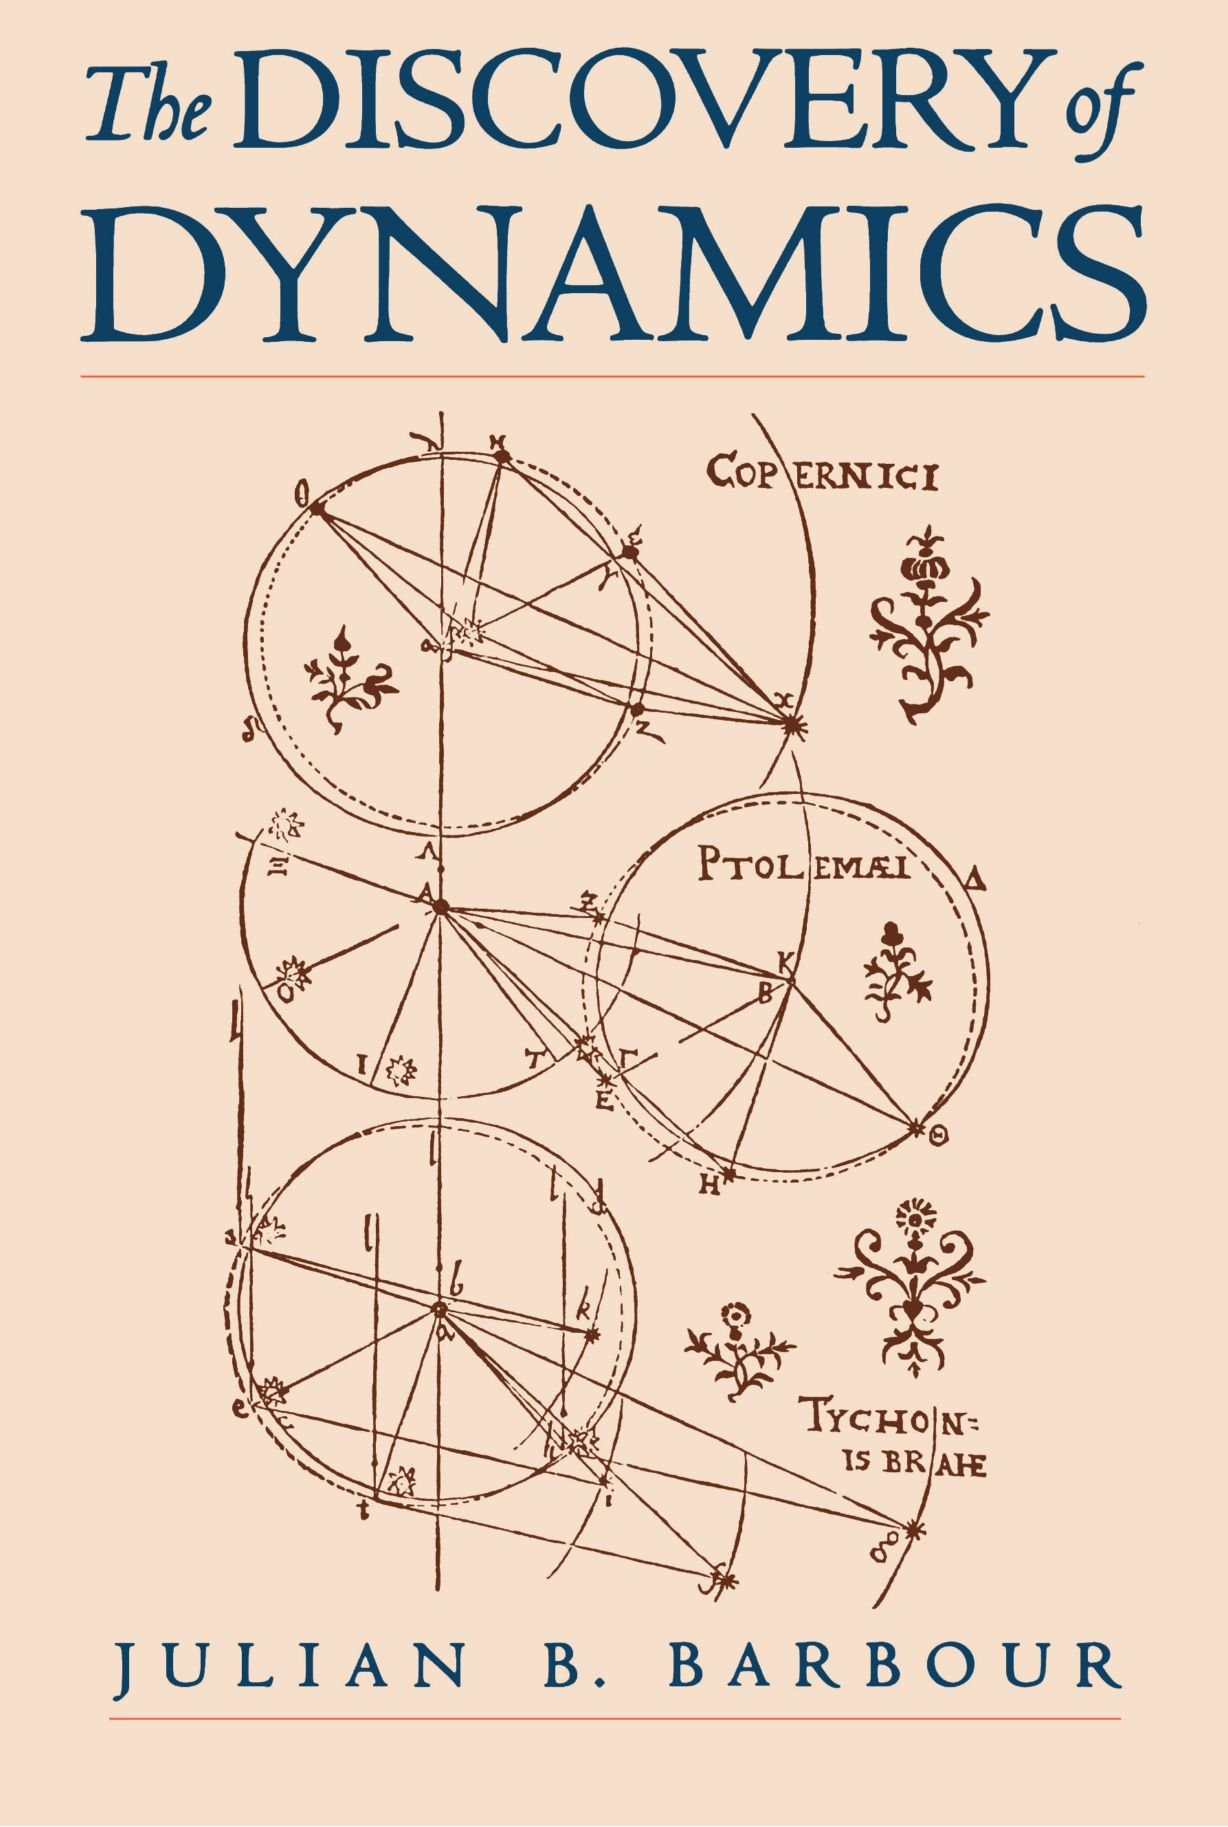 The Discovery of Dynamics: A Study from a Machian